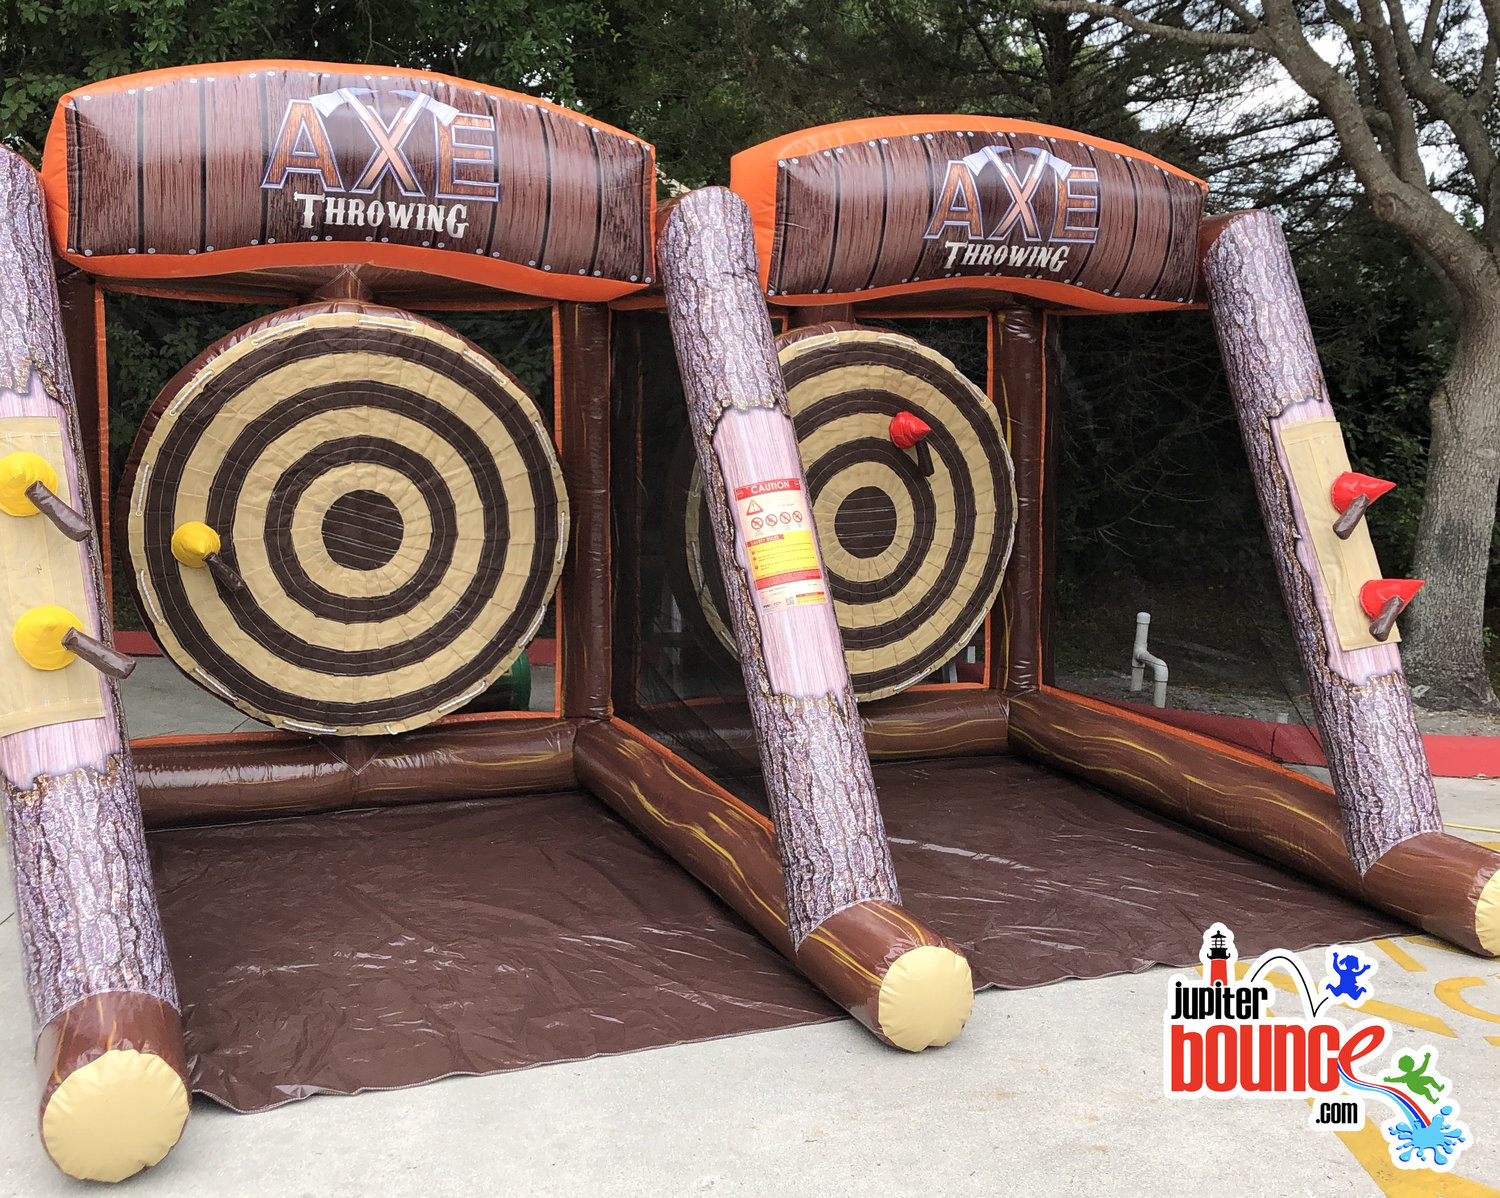 lumberjack-safeaxethrowing-jupiterbouncehouserental-waterslide-interactivegames-palmbeachcounty-westpalmbeach.jpg